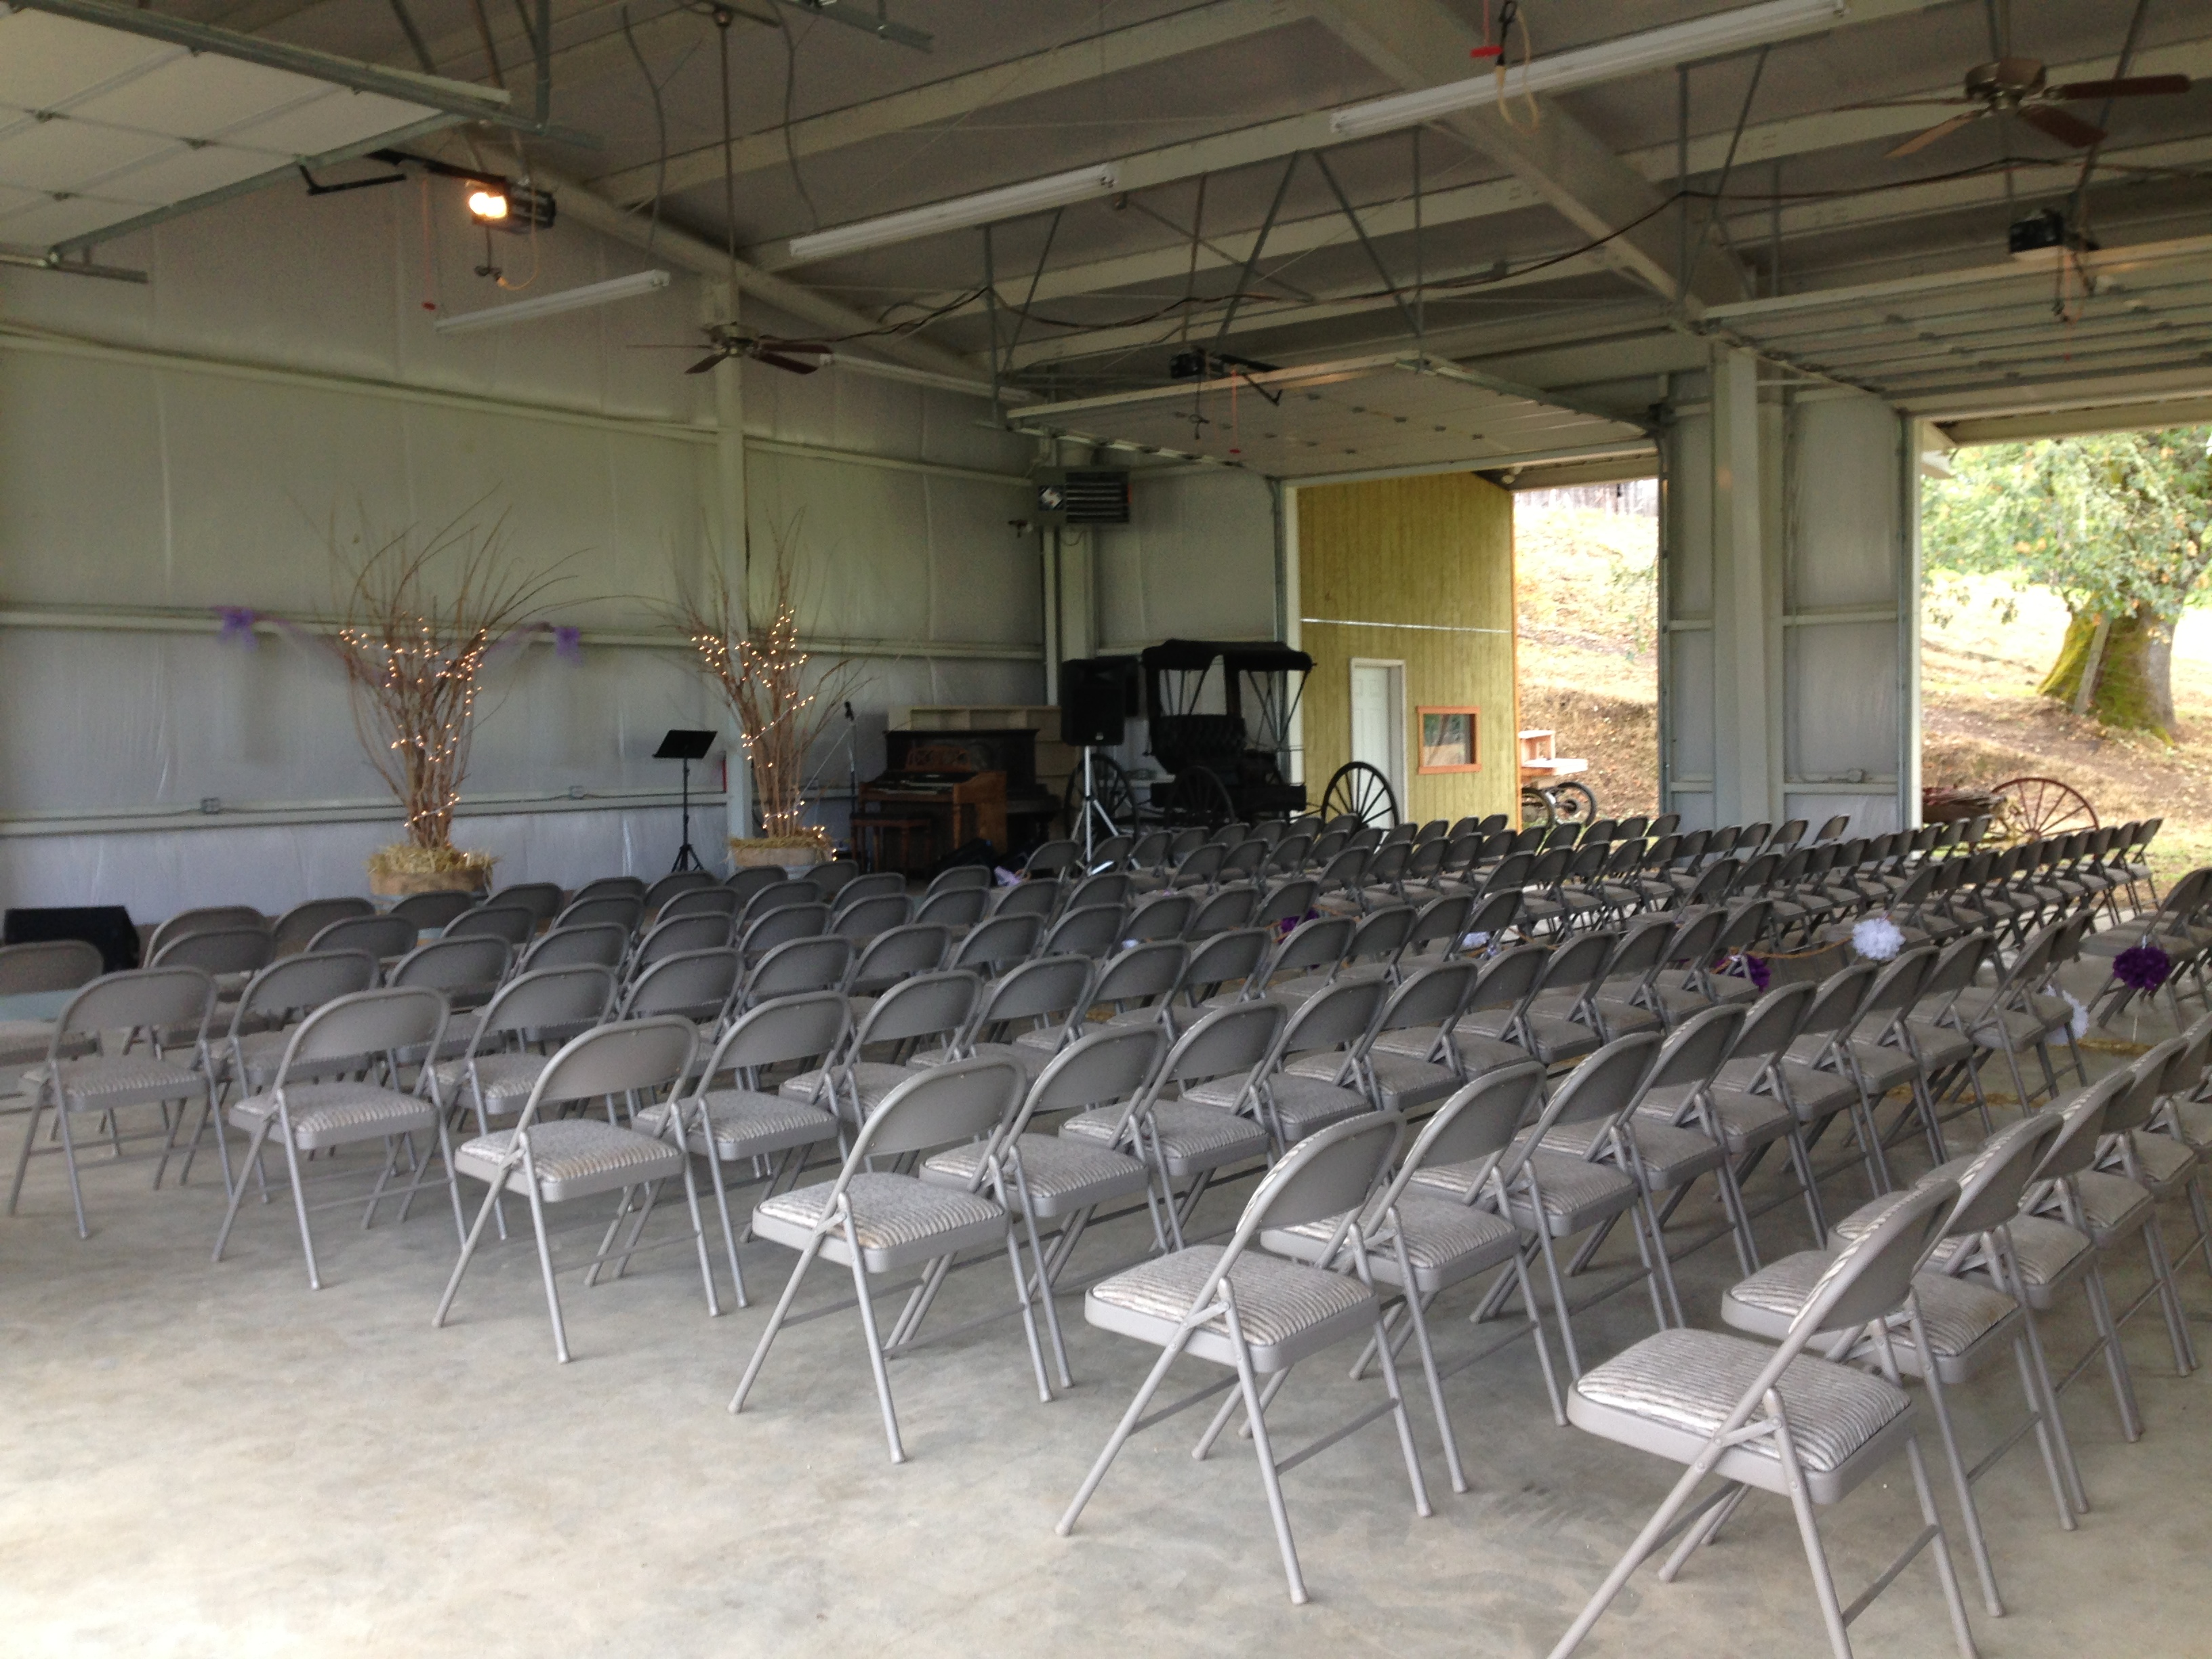 A 200 seat facility with sound system, stage, and projector